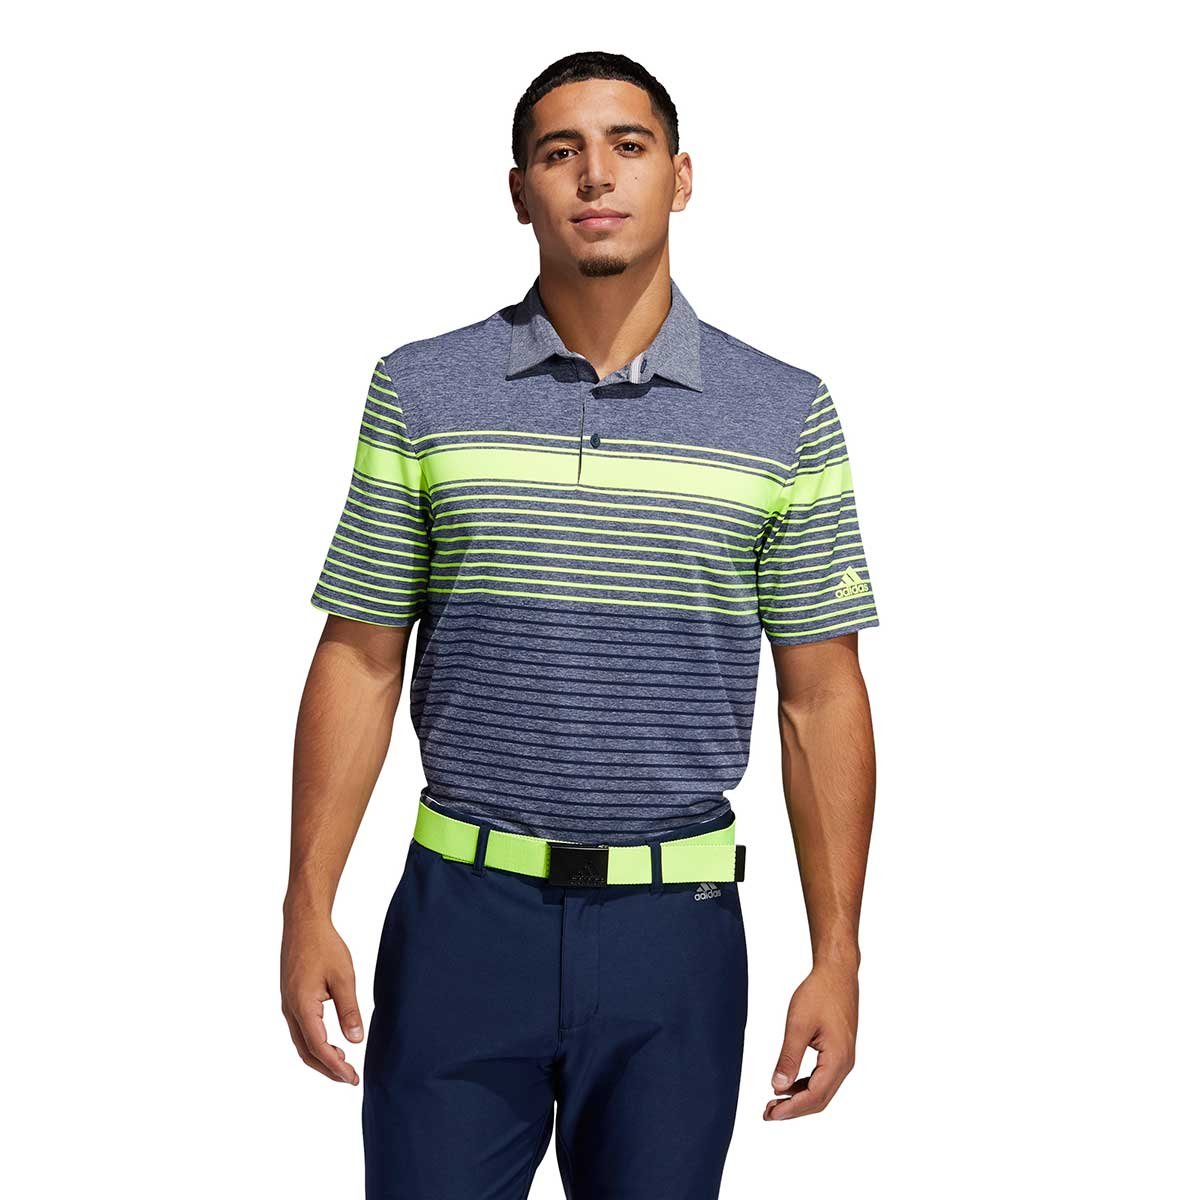 Adidas Men's Ultimate365 Engineered Heathered Navy/Solar Polo